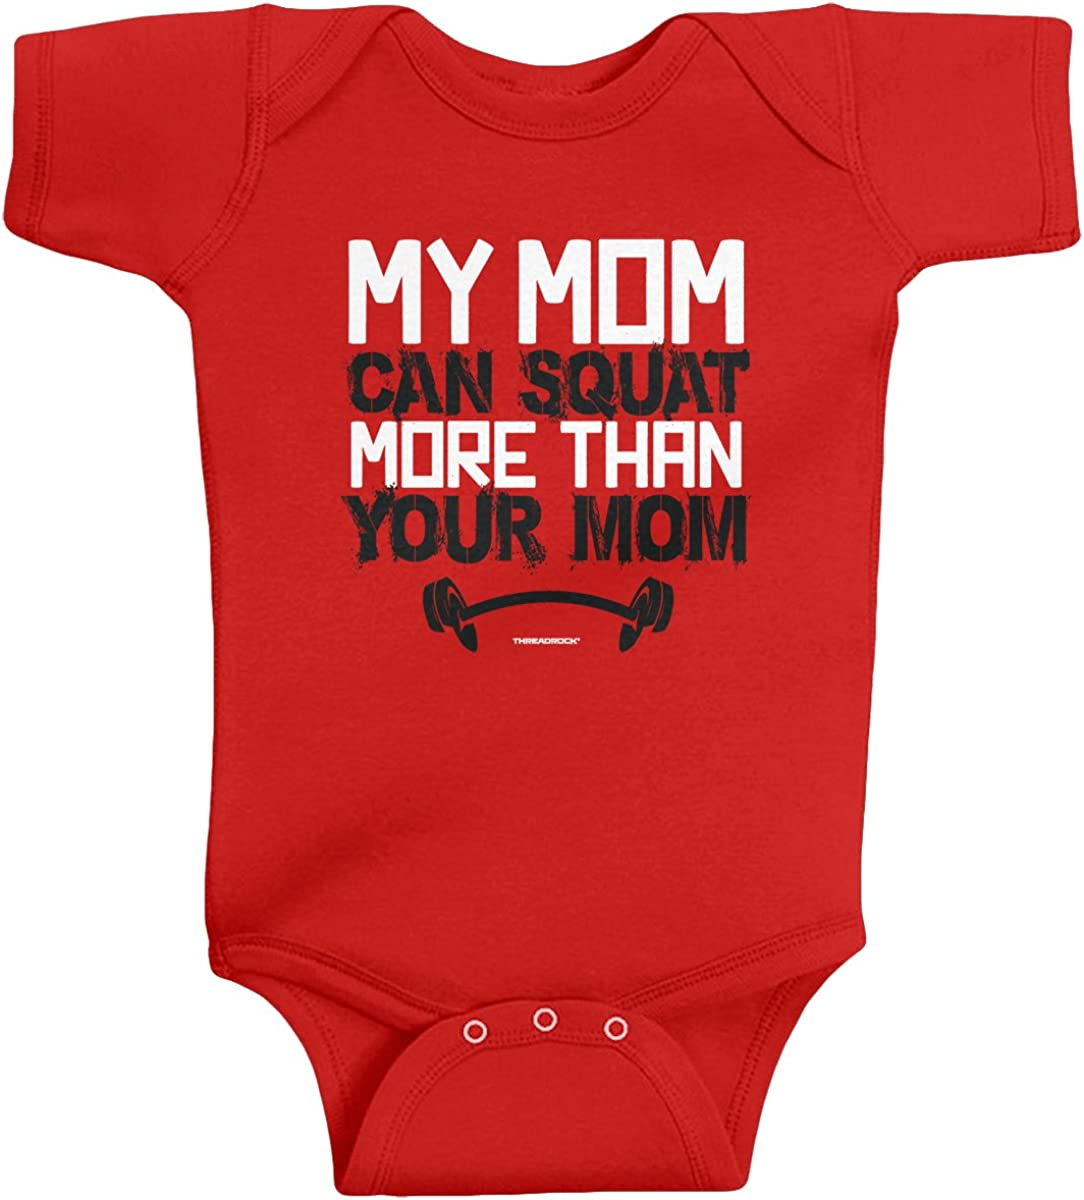 Threadrock Baby Boys' My Mom Can Squat More Than Your Mom Infant Bodysuit